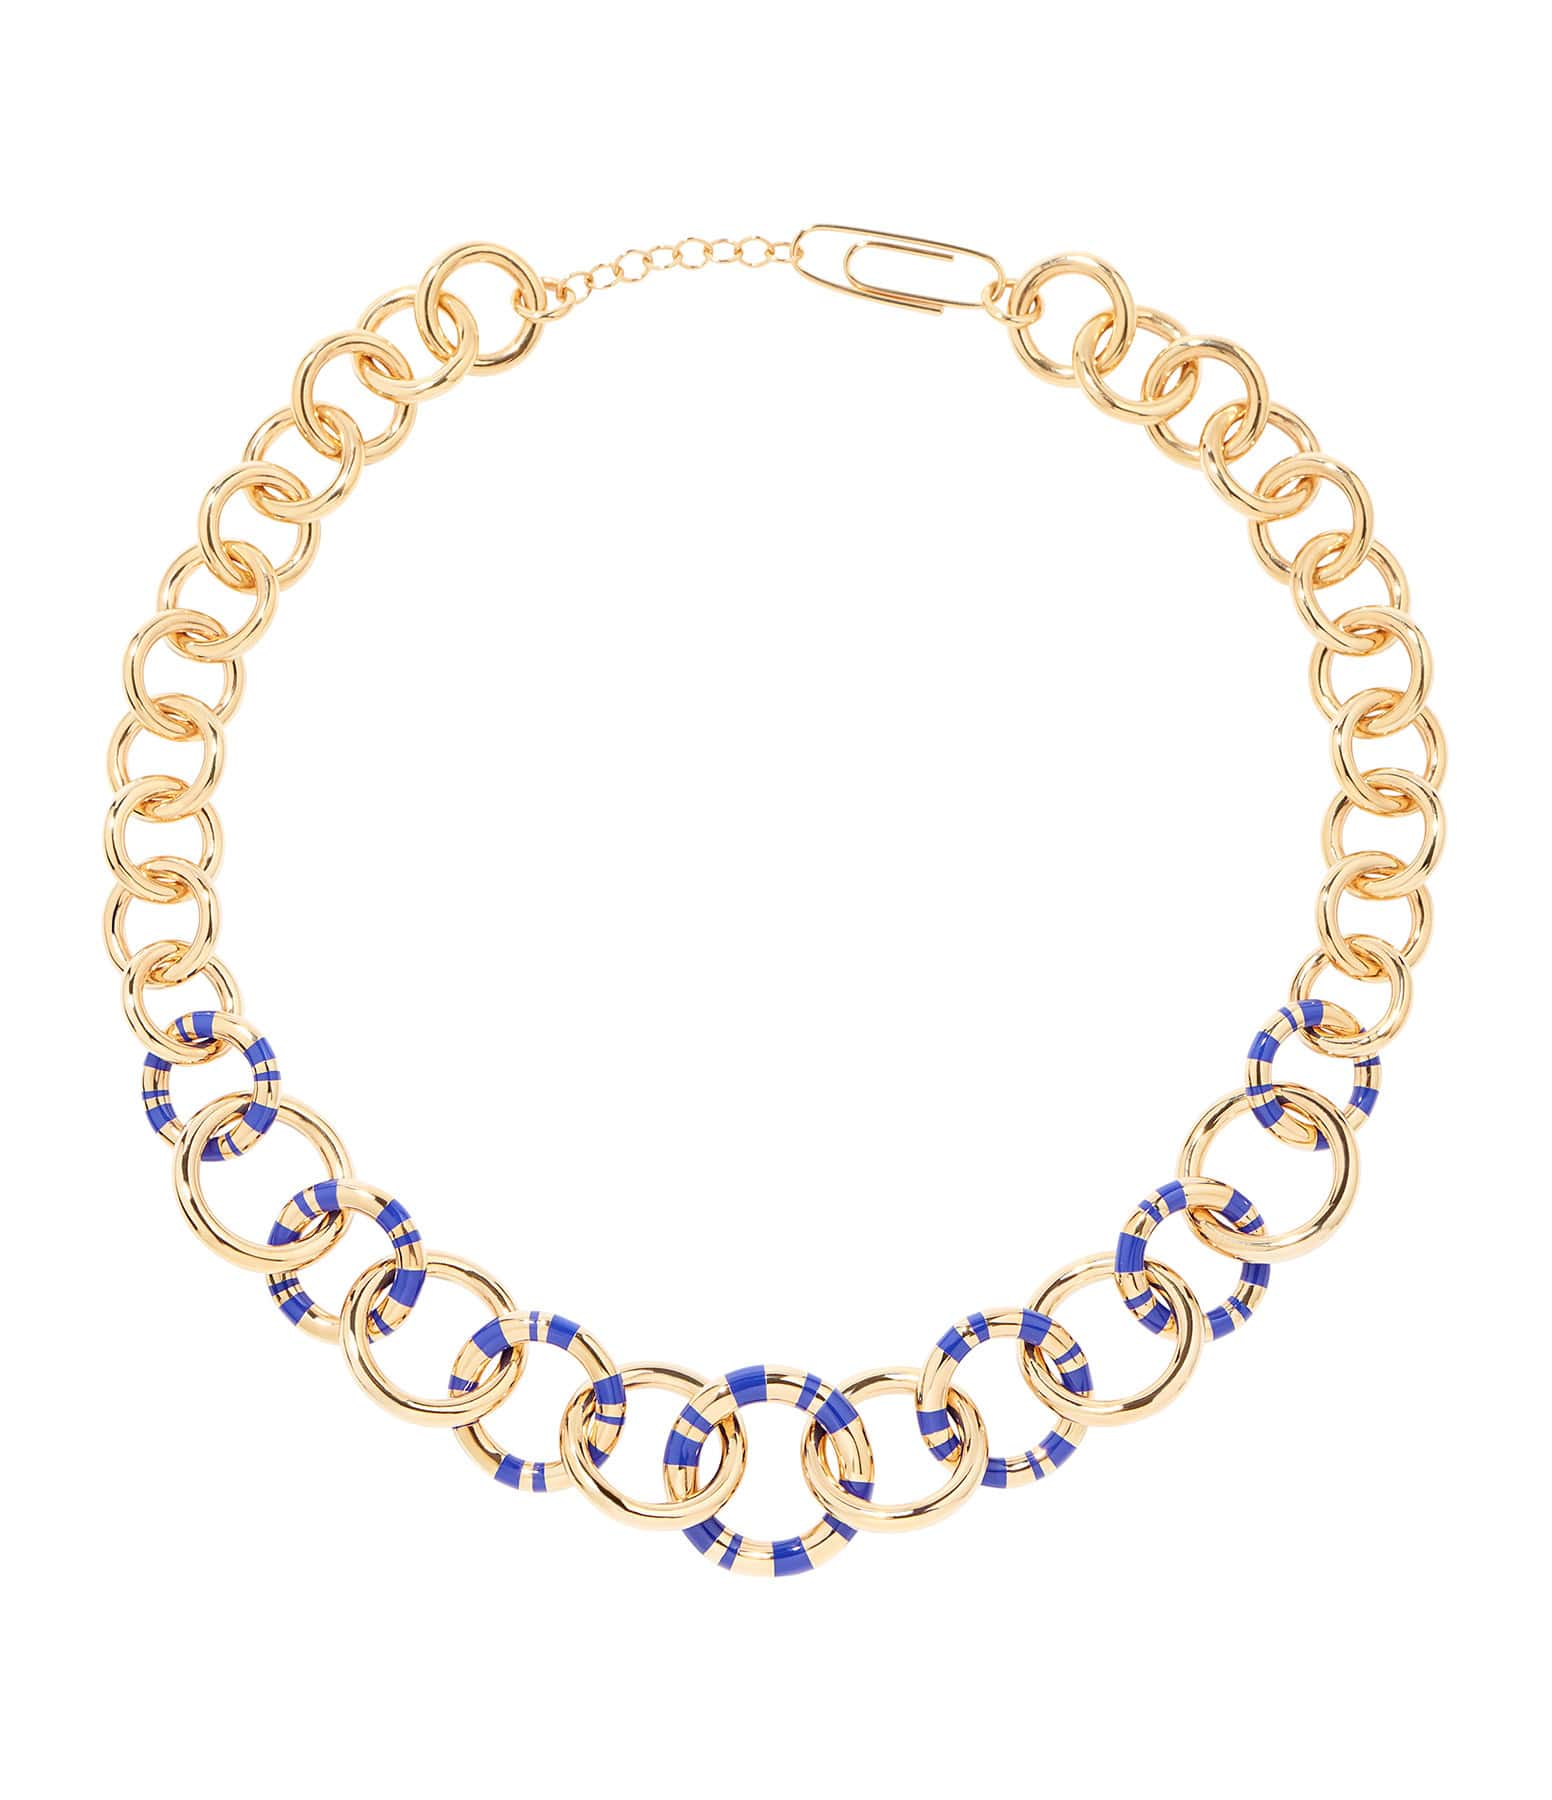 AURELIE BIDERMANN - Collier Positano XL Lapis Lazuli Plaqué Or